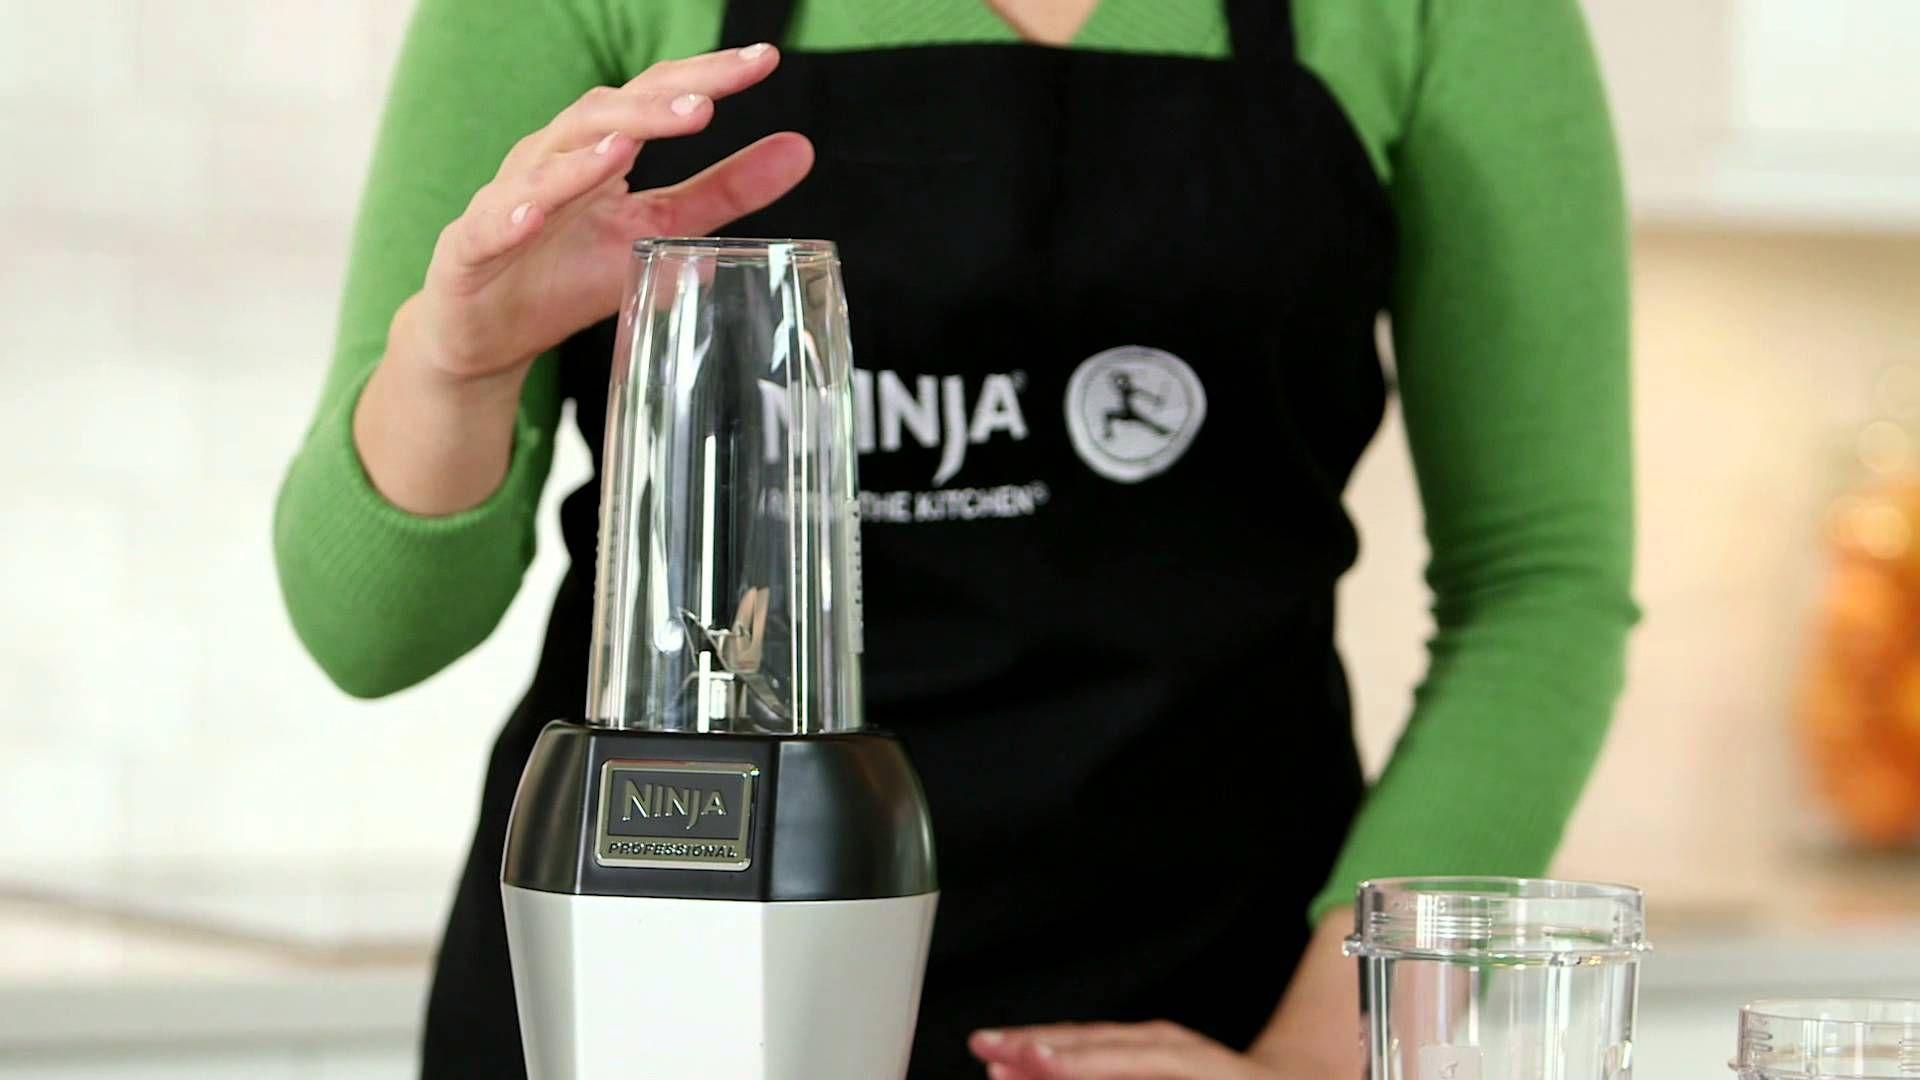 How to use the nutri ninja product demonstration with